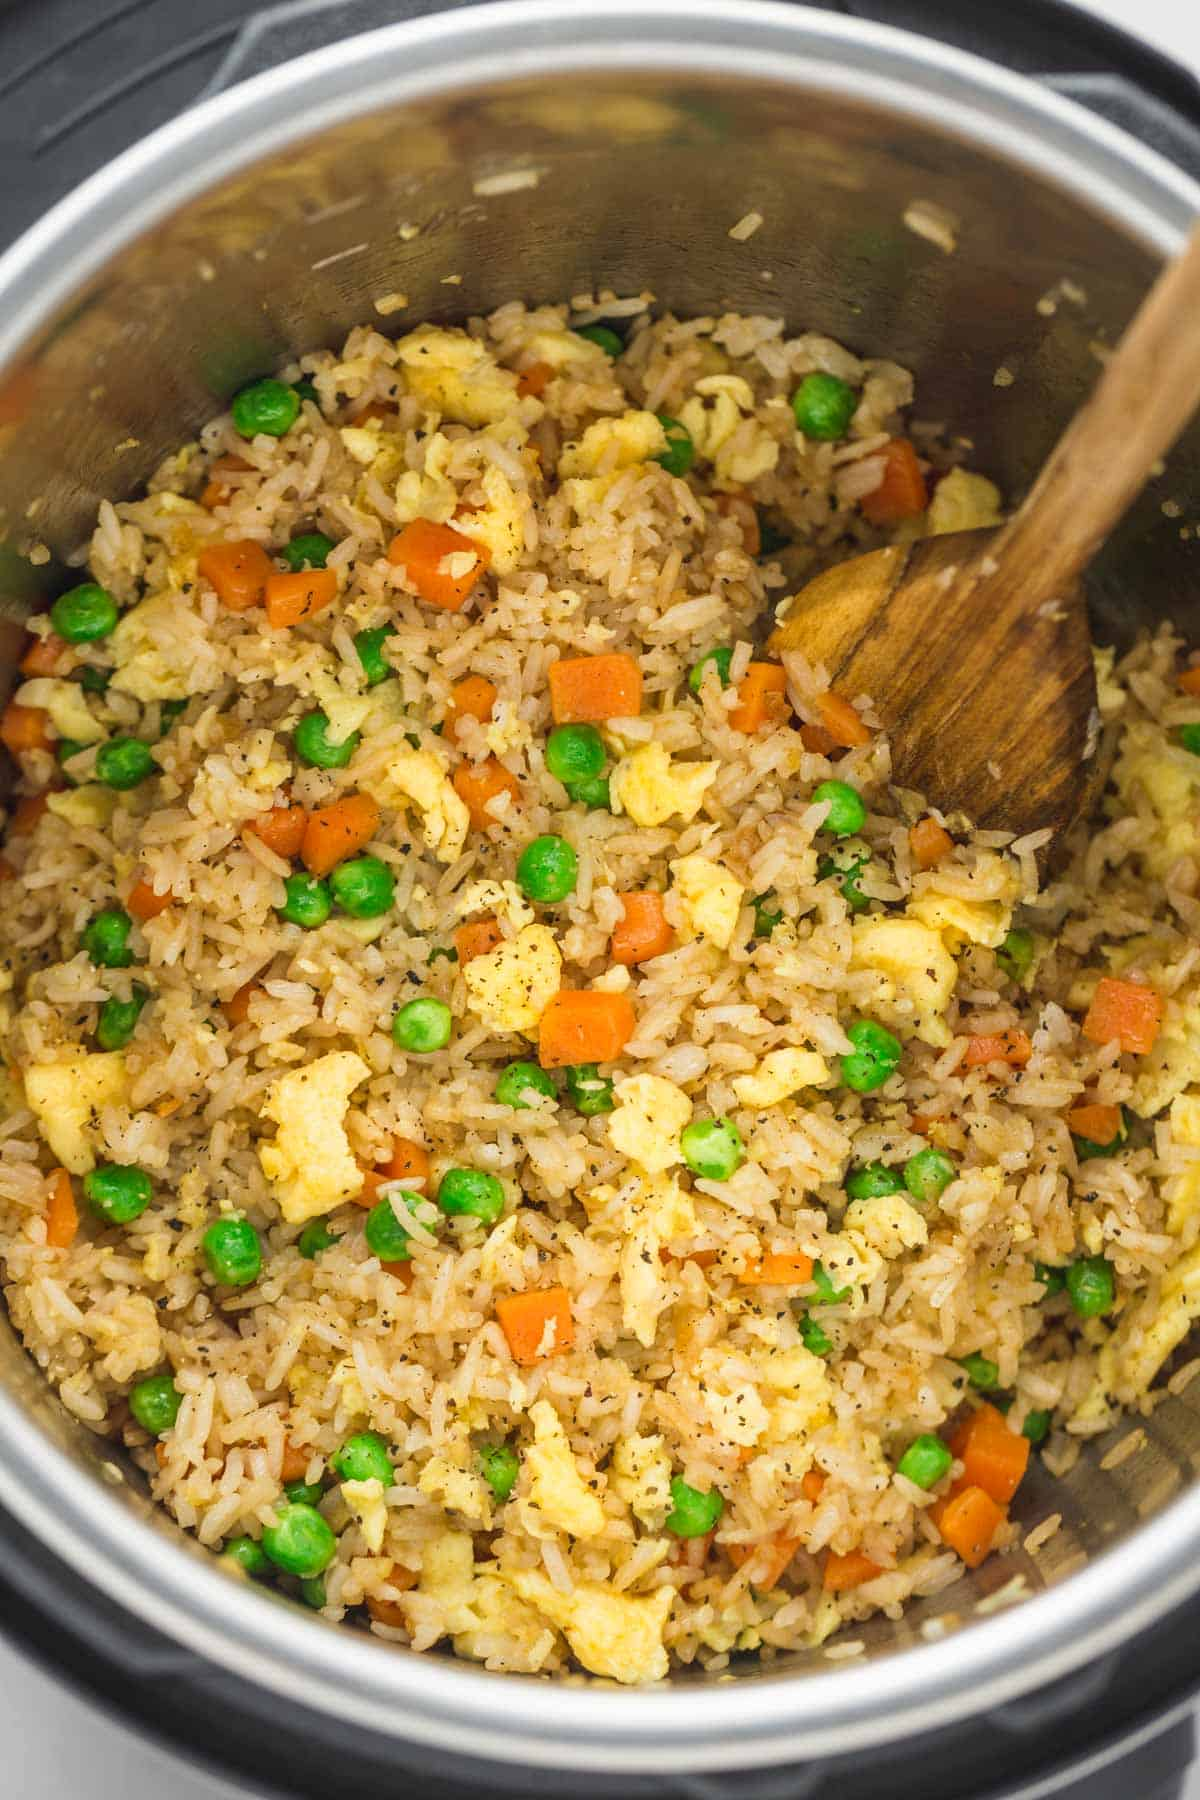 Fried rice in the instant pot with a wooden spoon